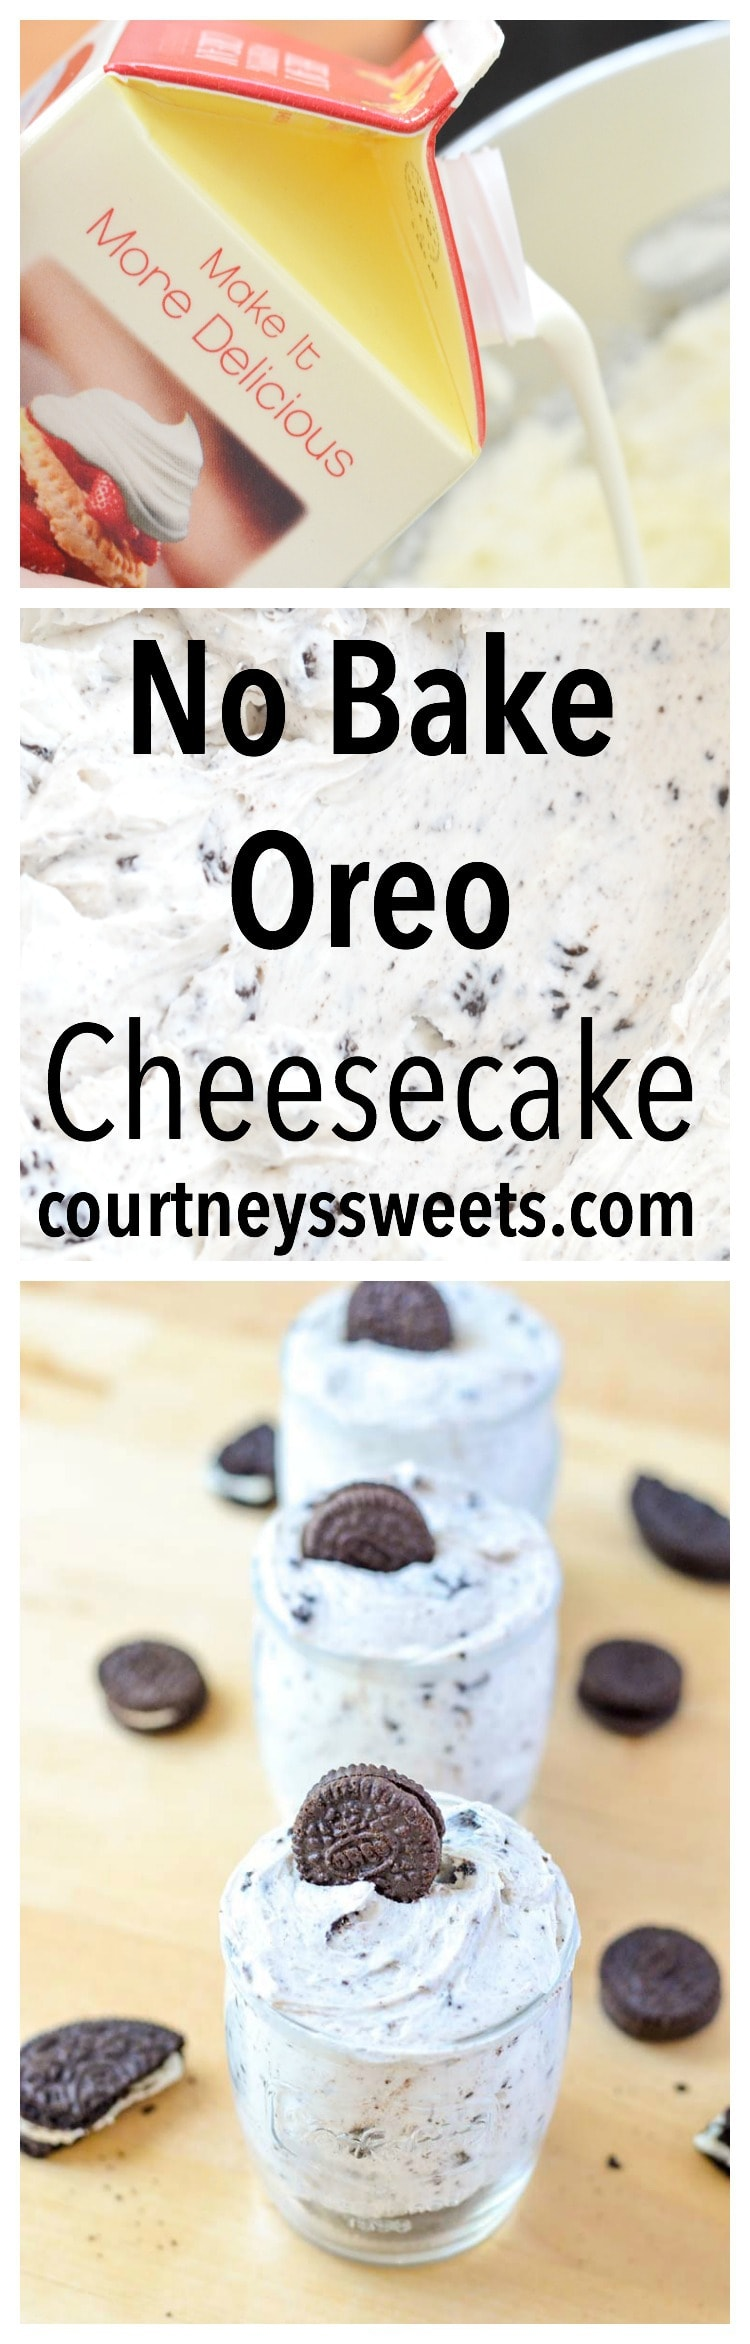 No Bake Oreo Cheesecake Recipe - a delicious dessert in less than 10 minutes!